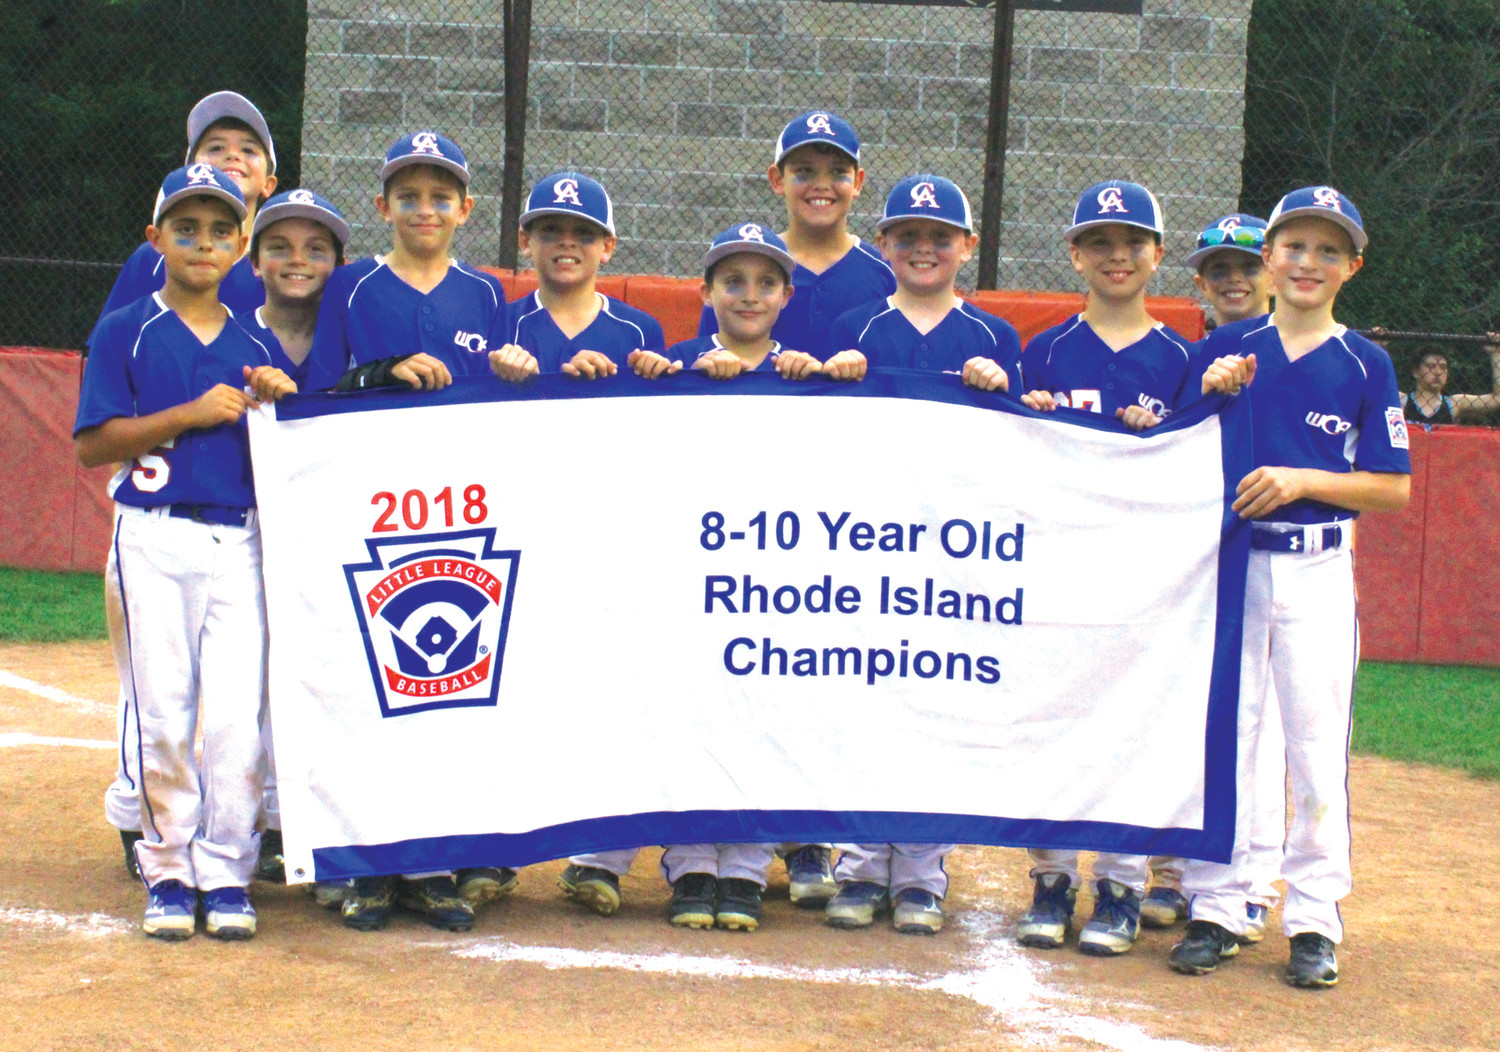 STATE CHAMPS: The Warwick Continental American 8-10 year old All-Star team after winning the state championship.